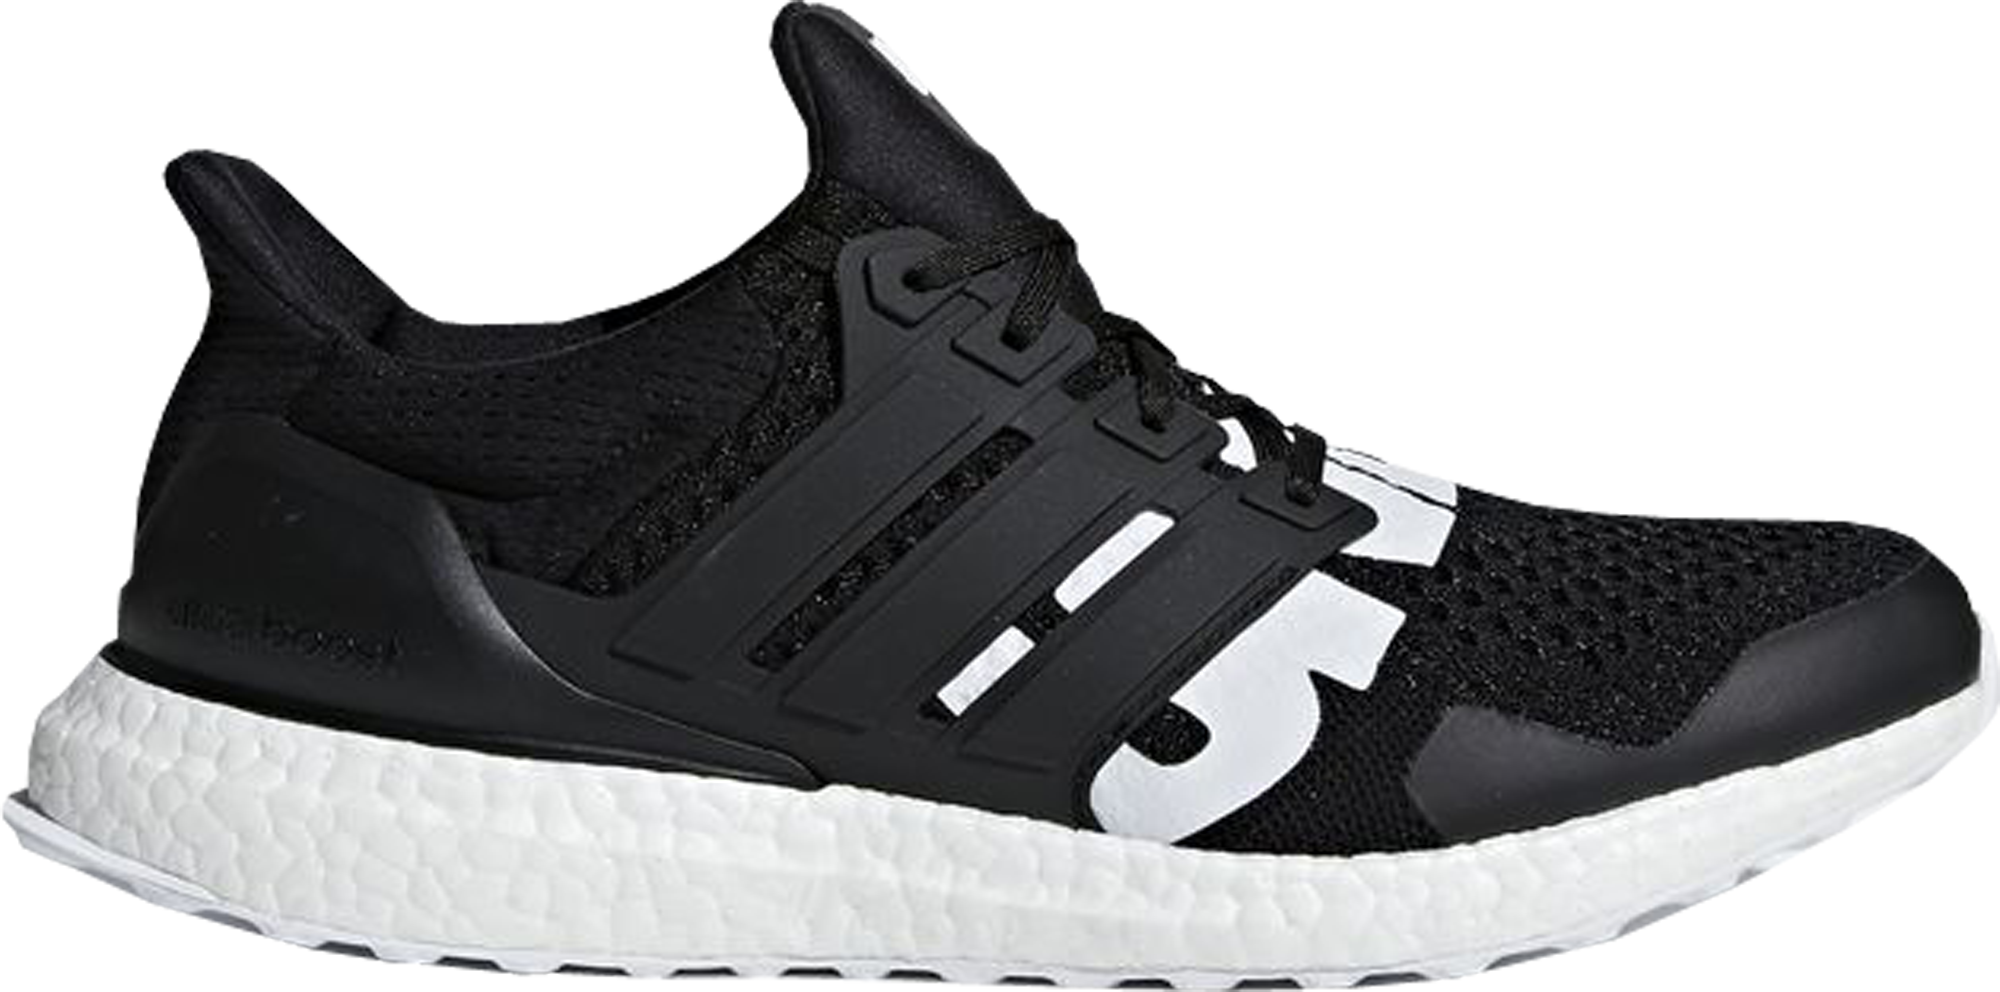 adidas Ultra Boost 4.0 UNDFTD Black